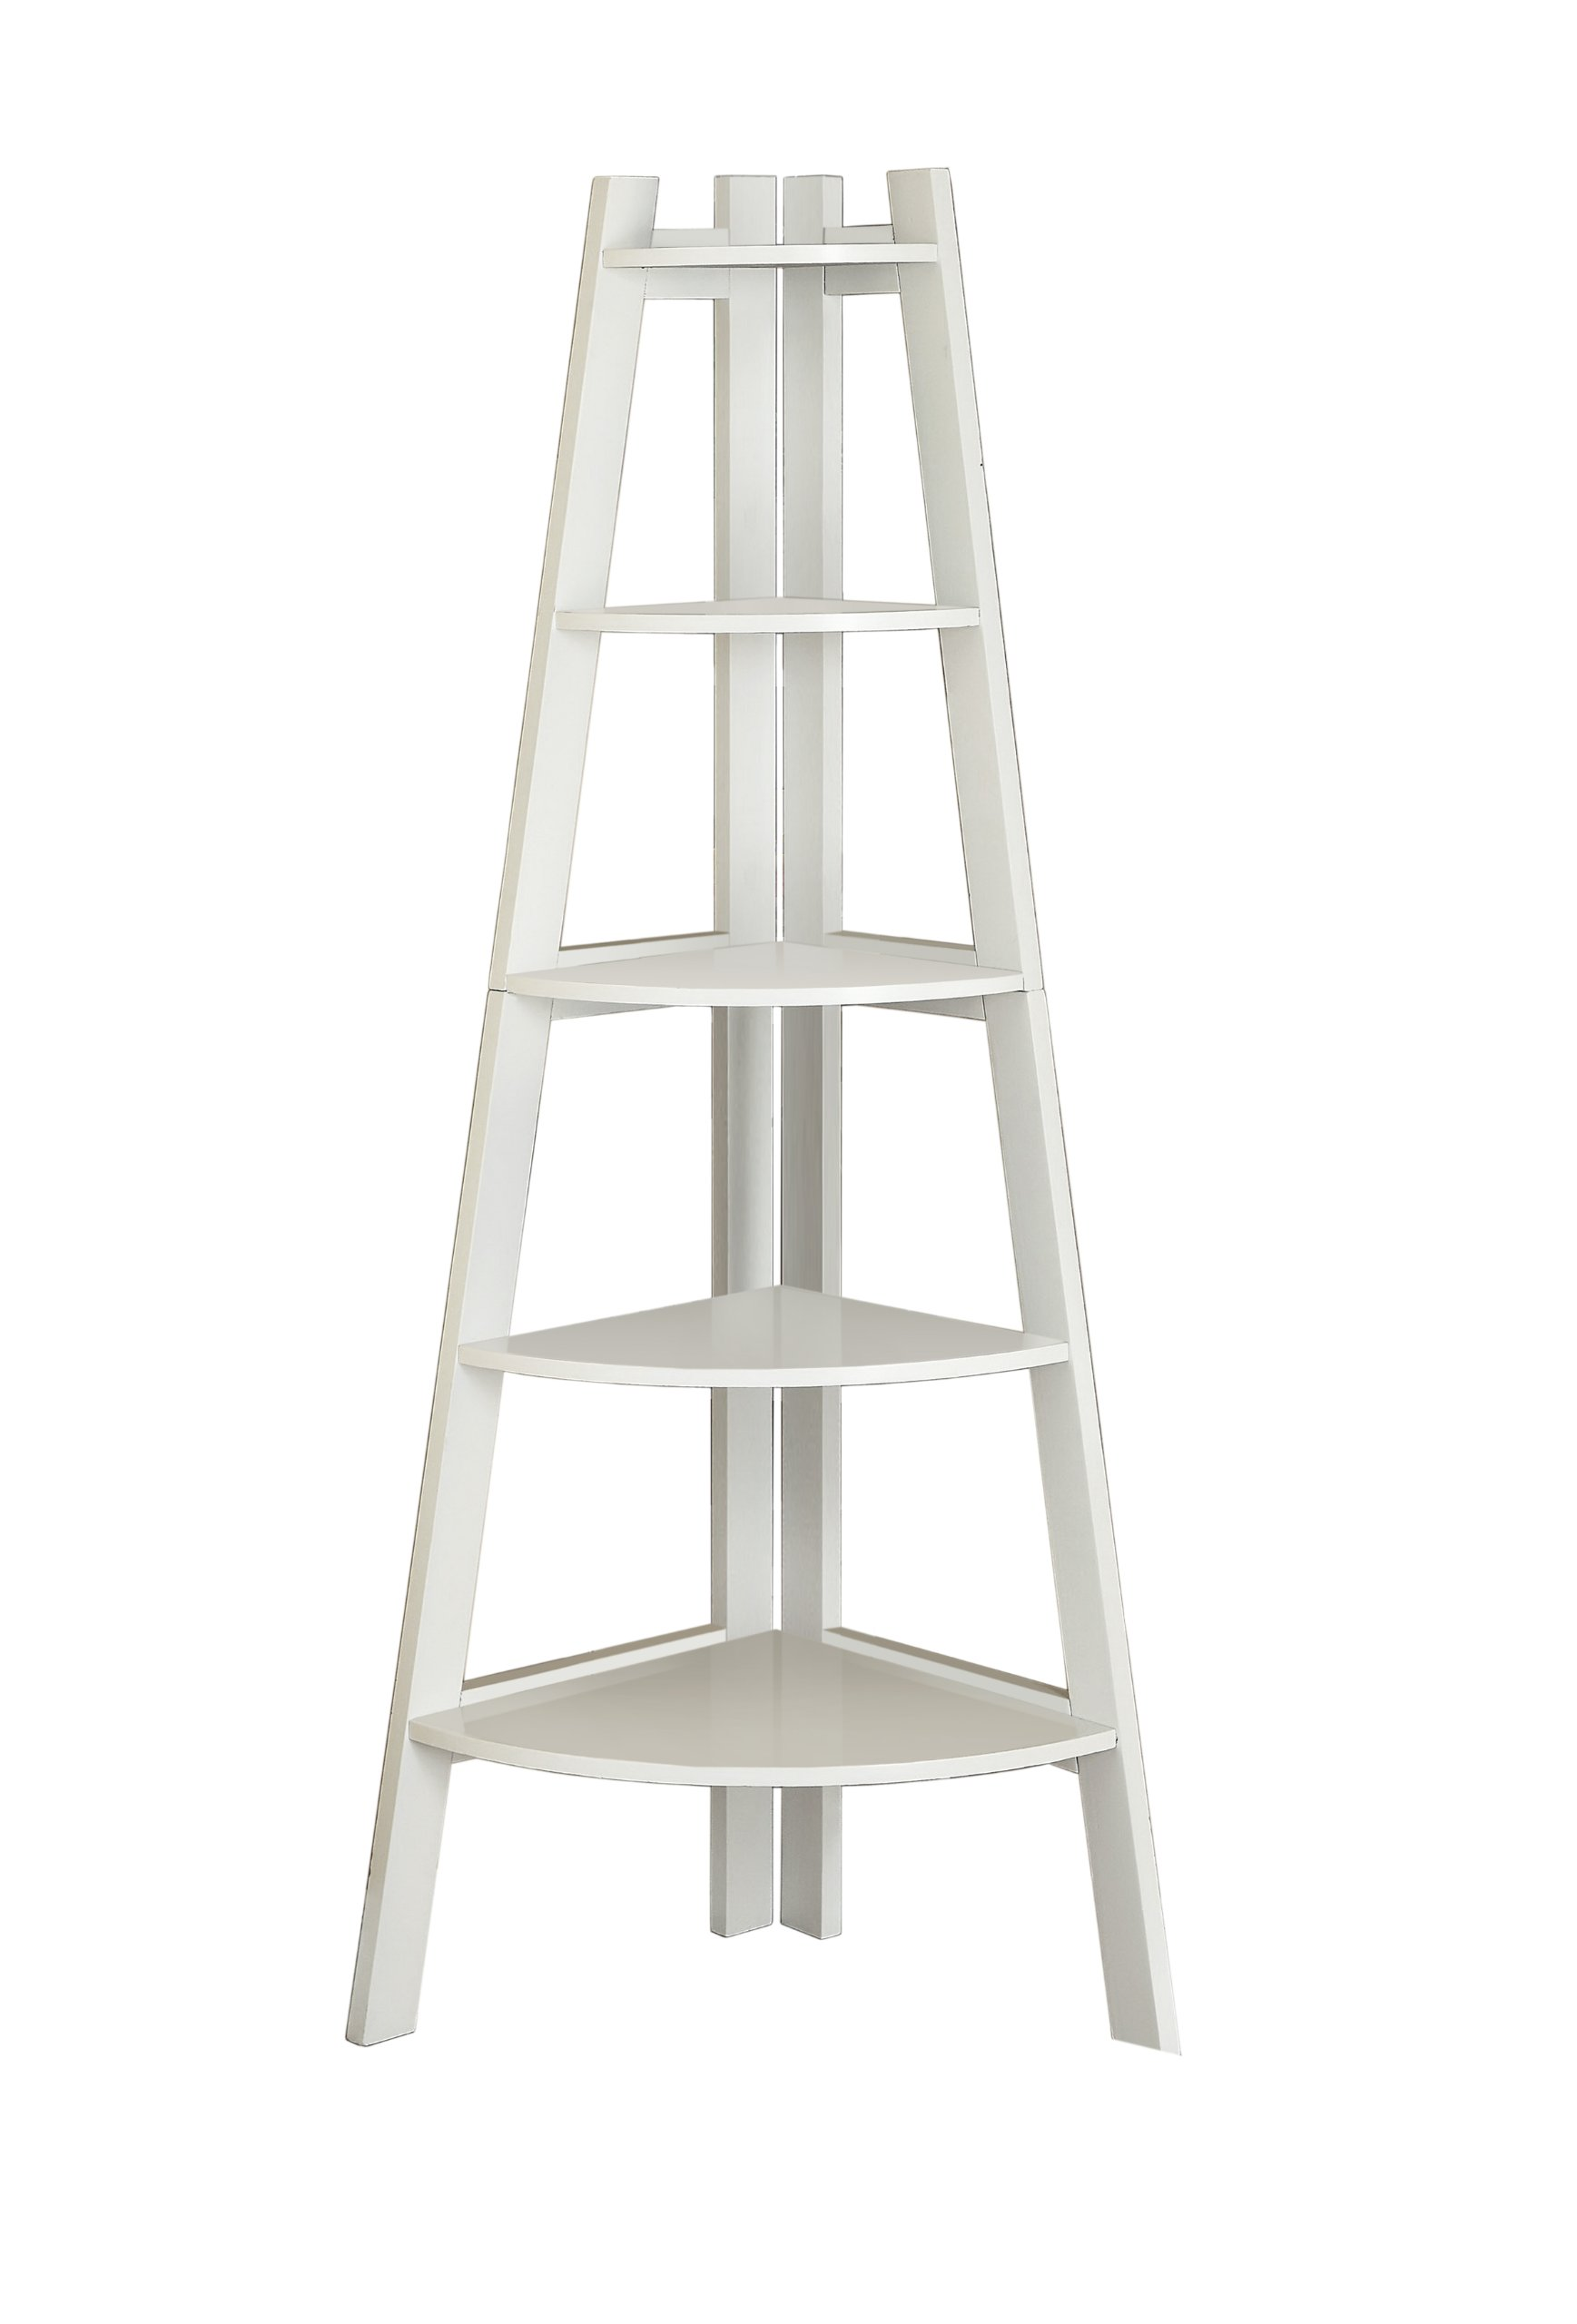 Furniture of America Andrea 5-Tier Corner Bookshelf, White by Furniture of America (Image #1)